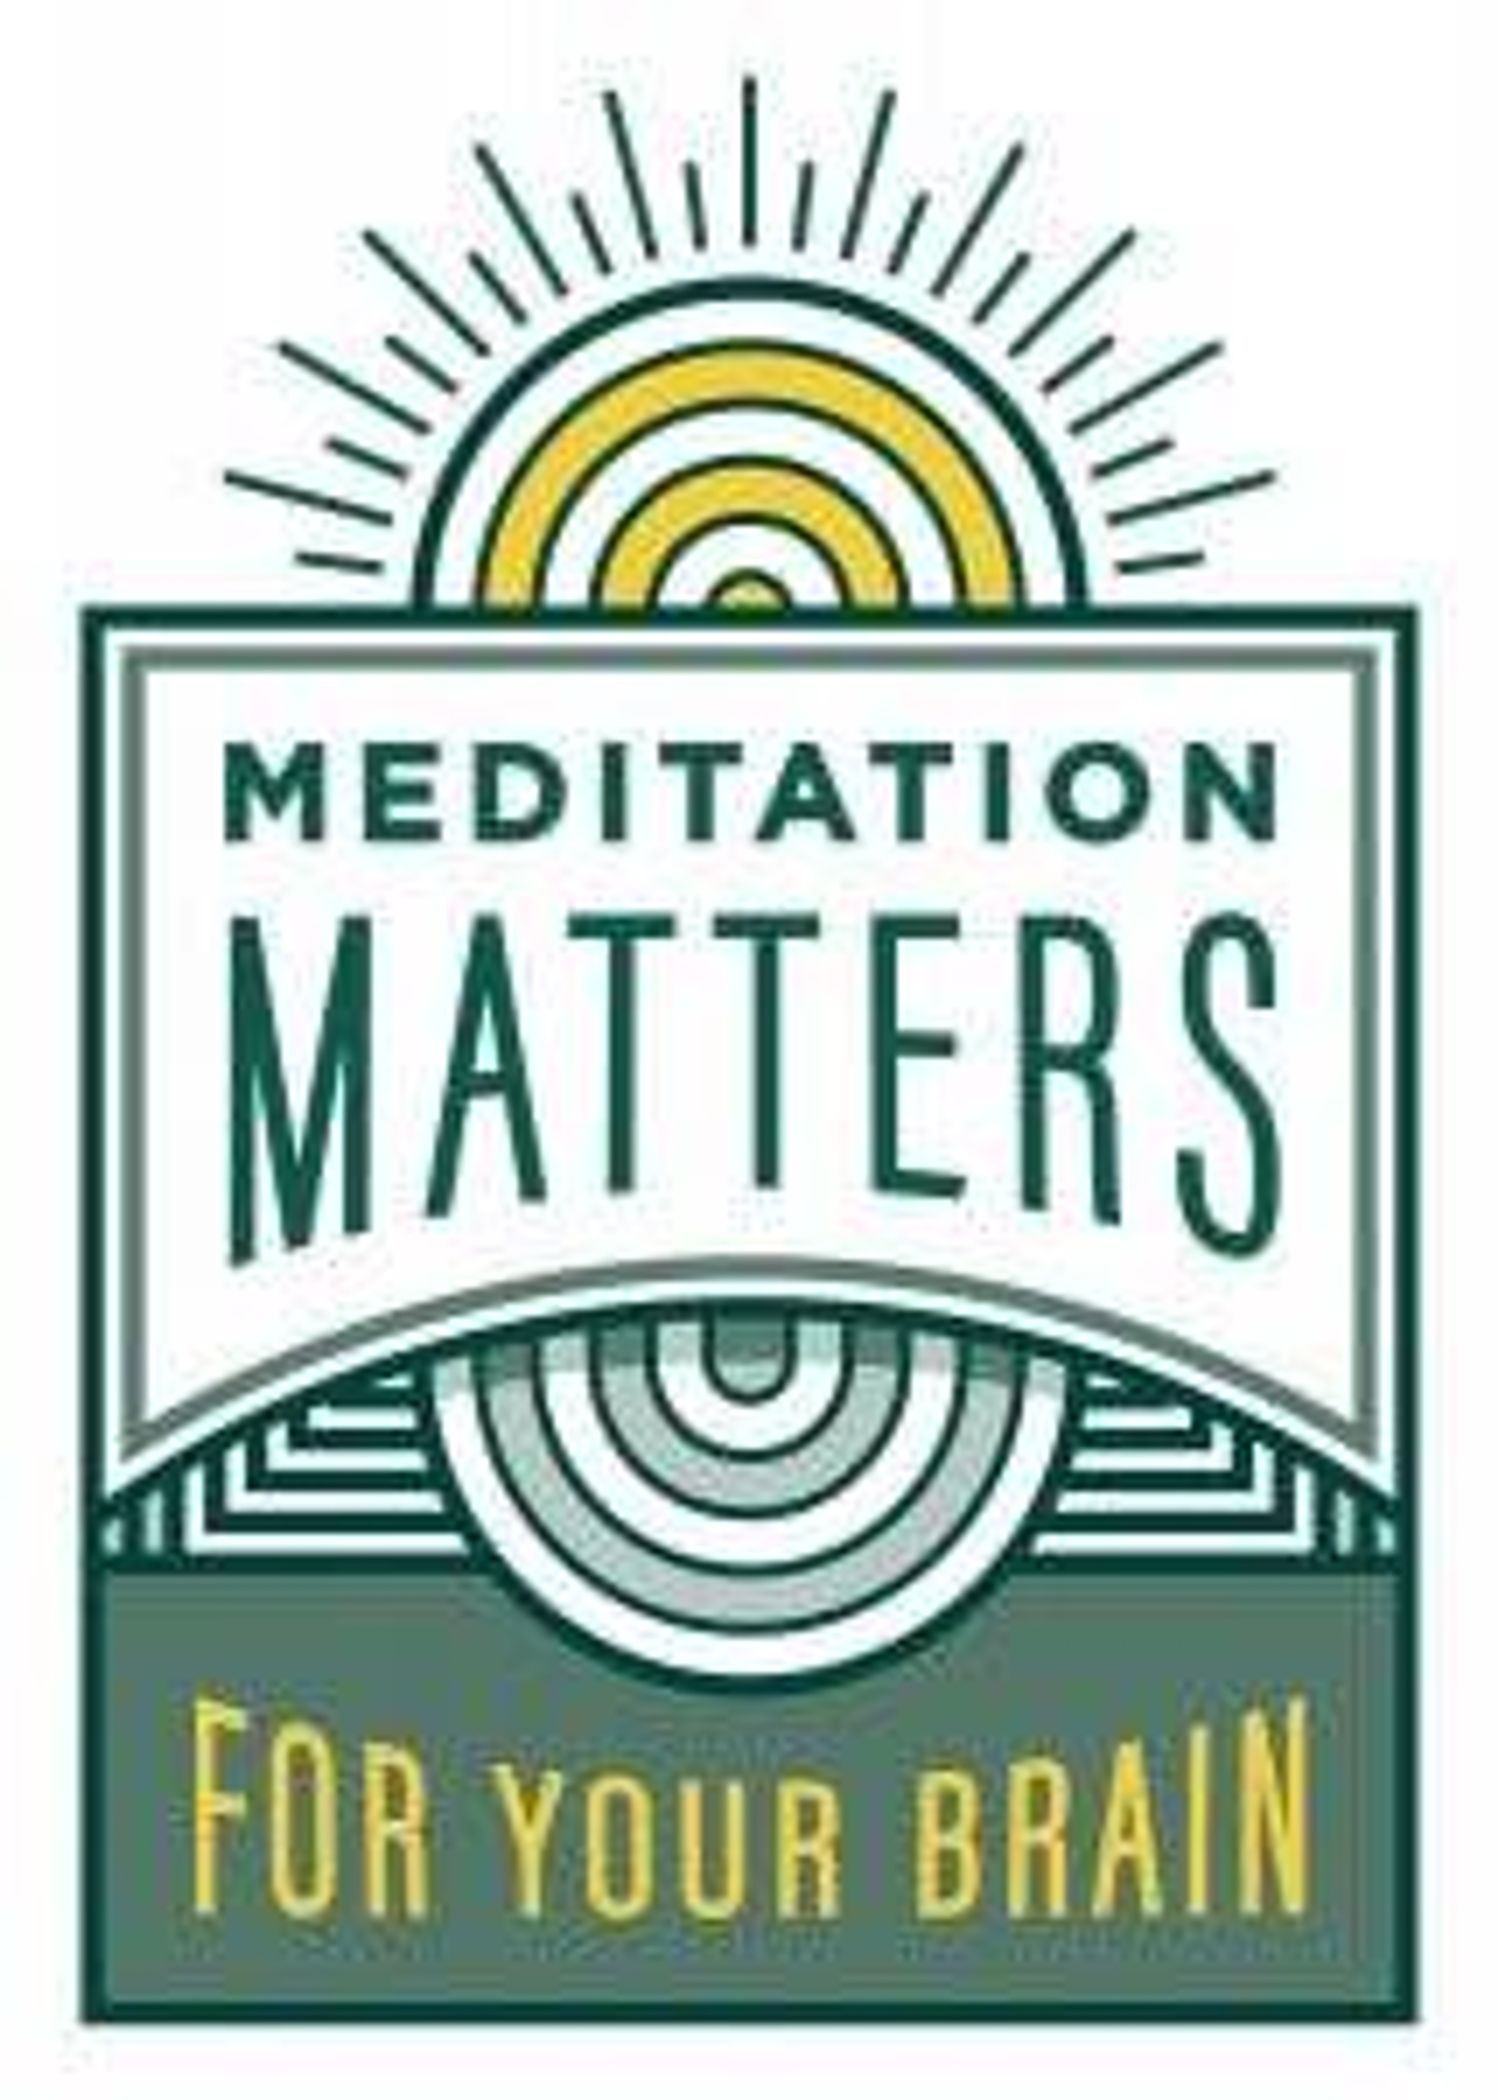 Meditation Matters – For Your Brain